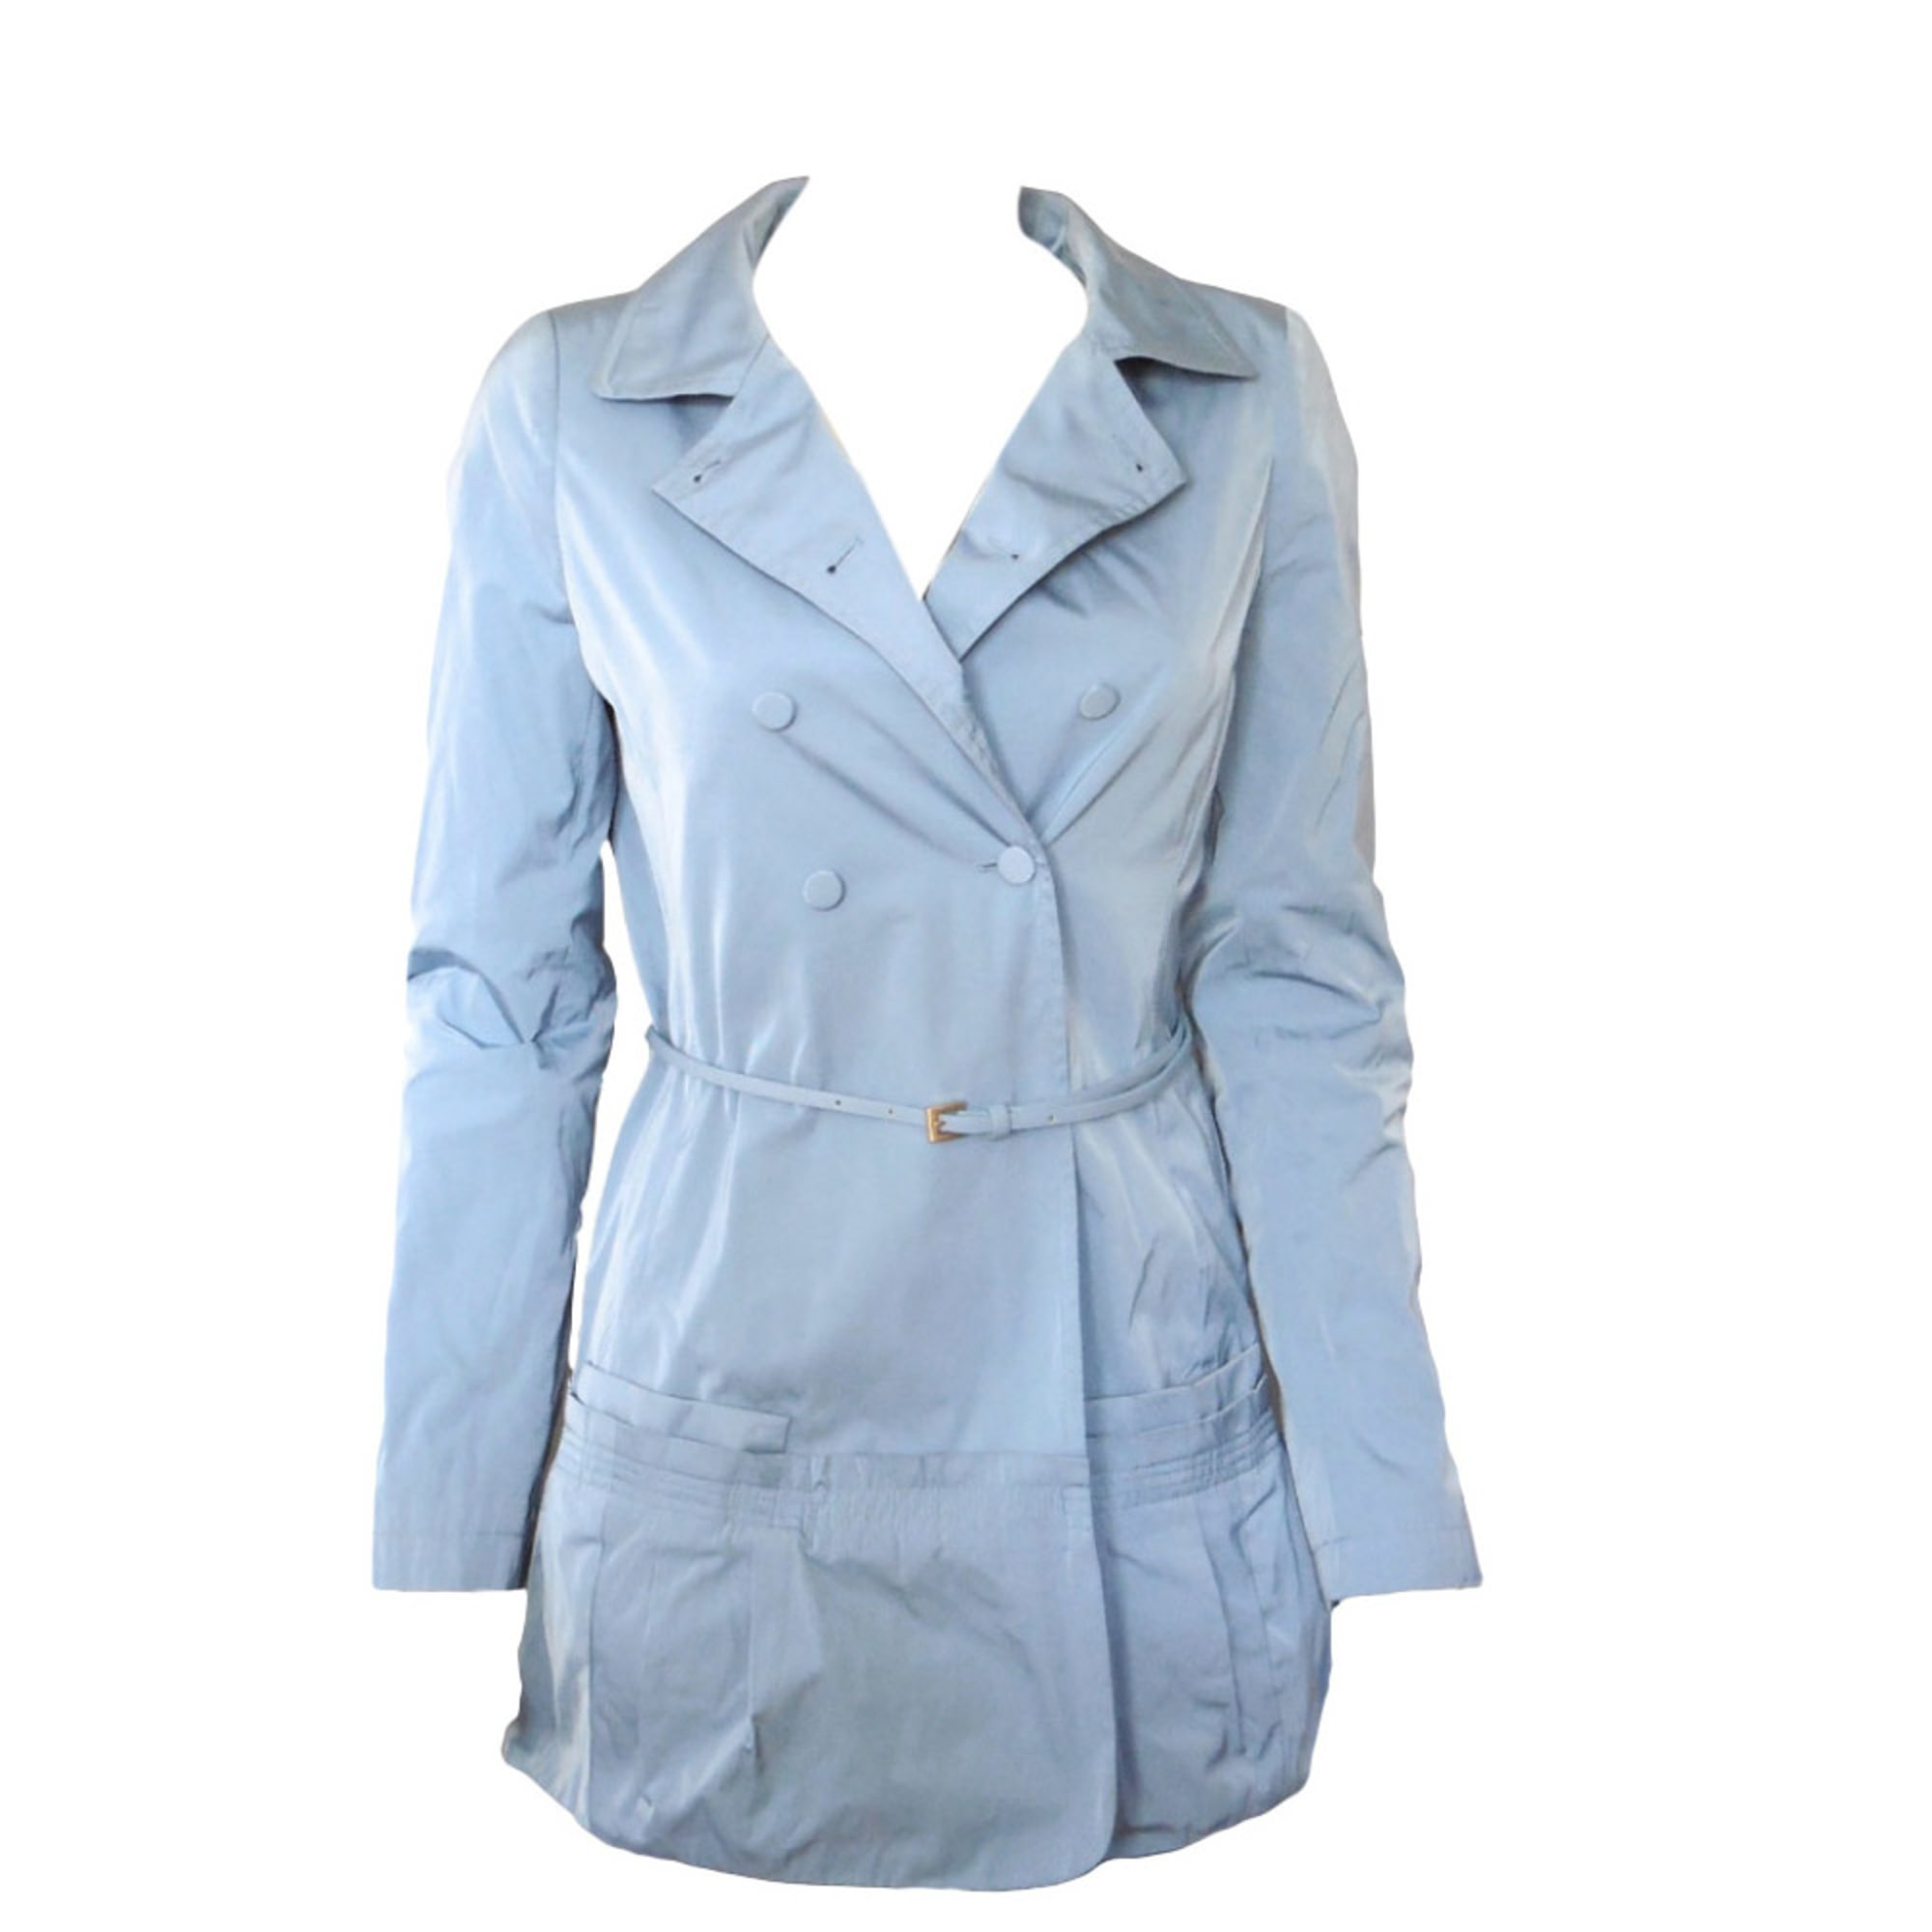 promo code 6bbfb a9476 Imperméable, trench